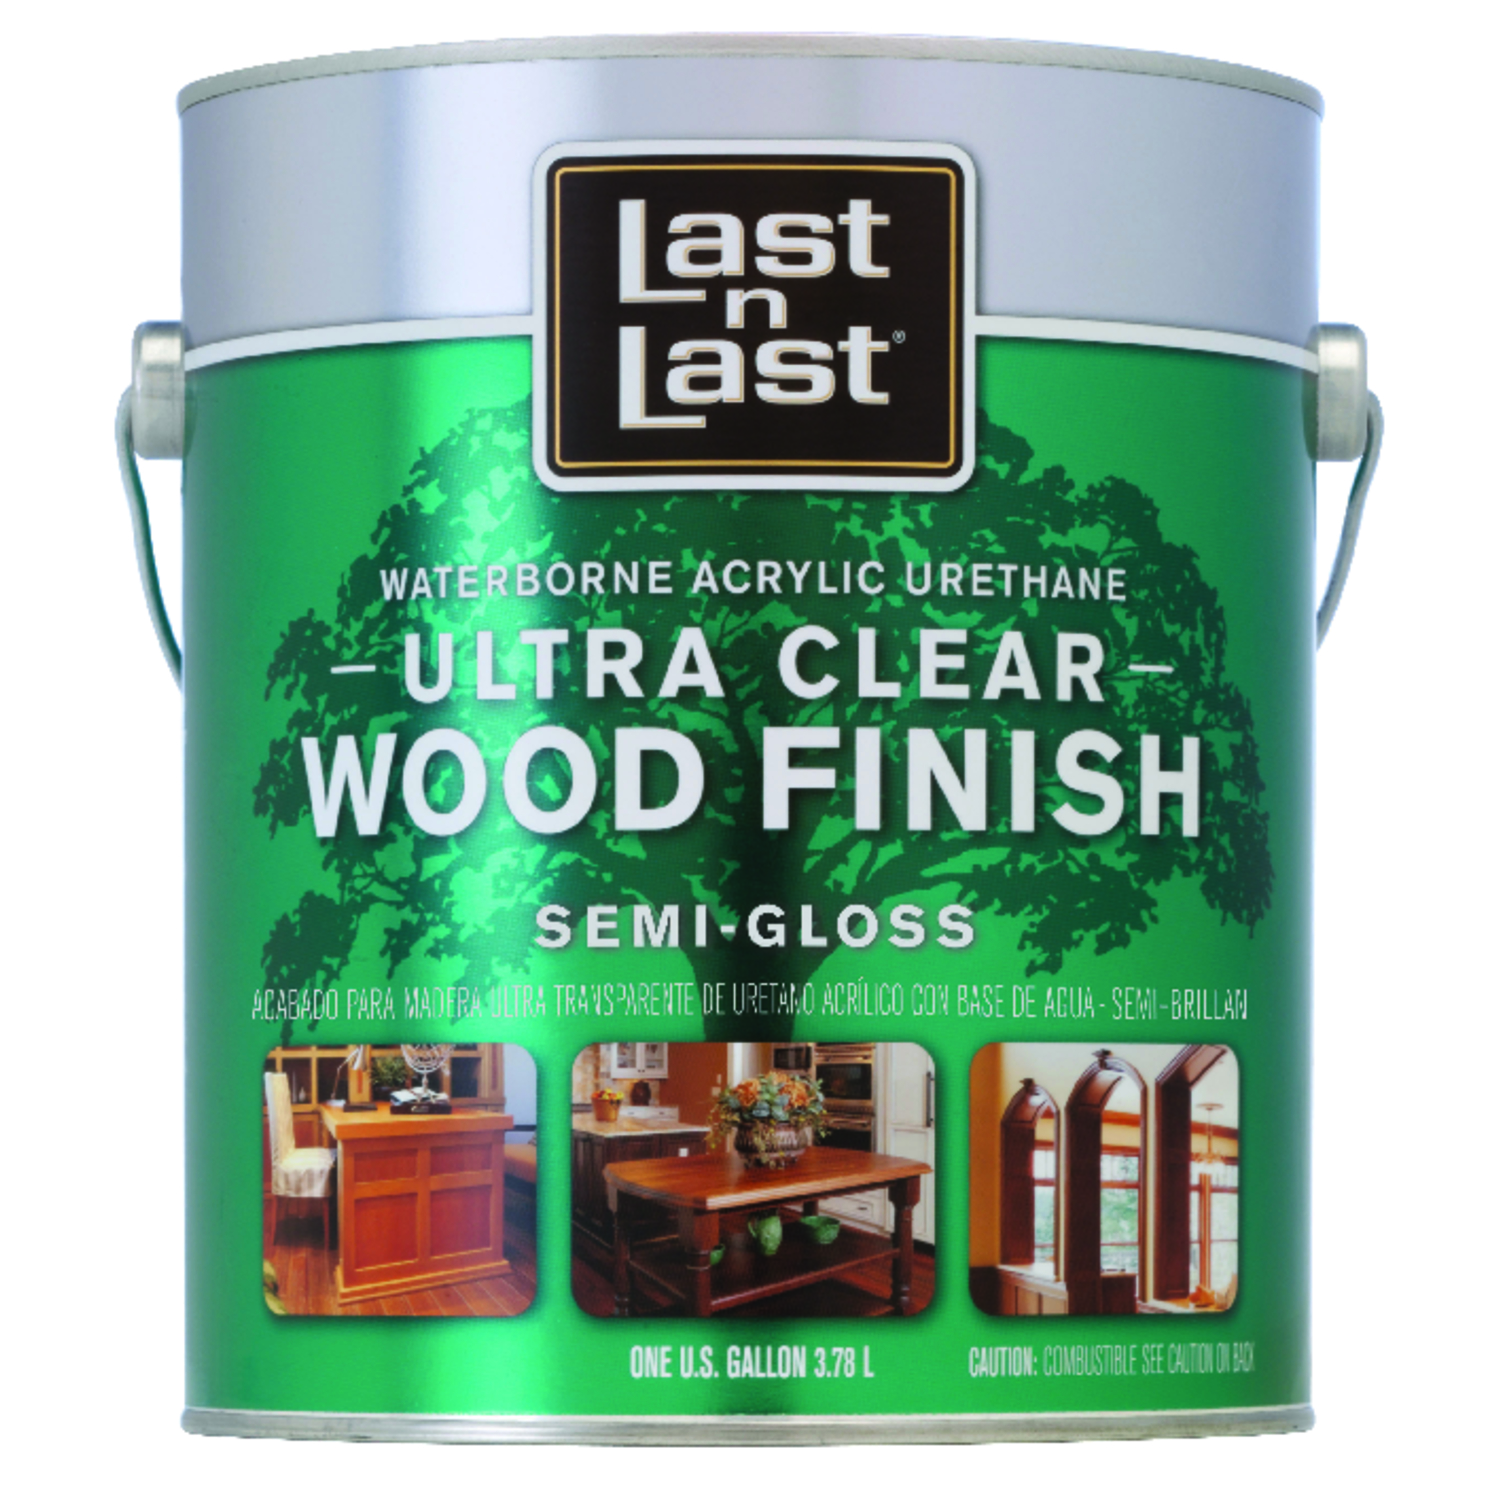 Last N Last Waterborne Wood Finish Acrylic Urethane  Interior Semi-Gloss Clear   1 Gal.  275 VOC g/l